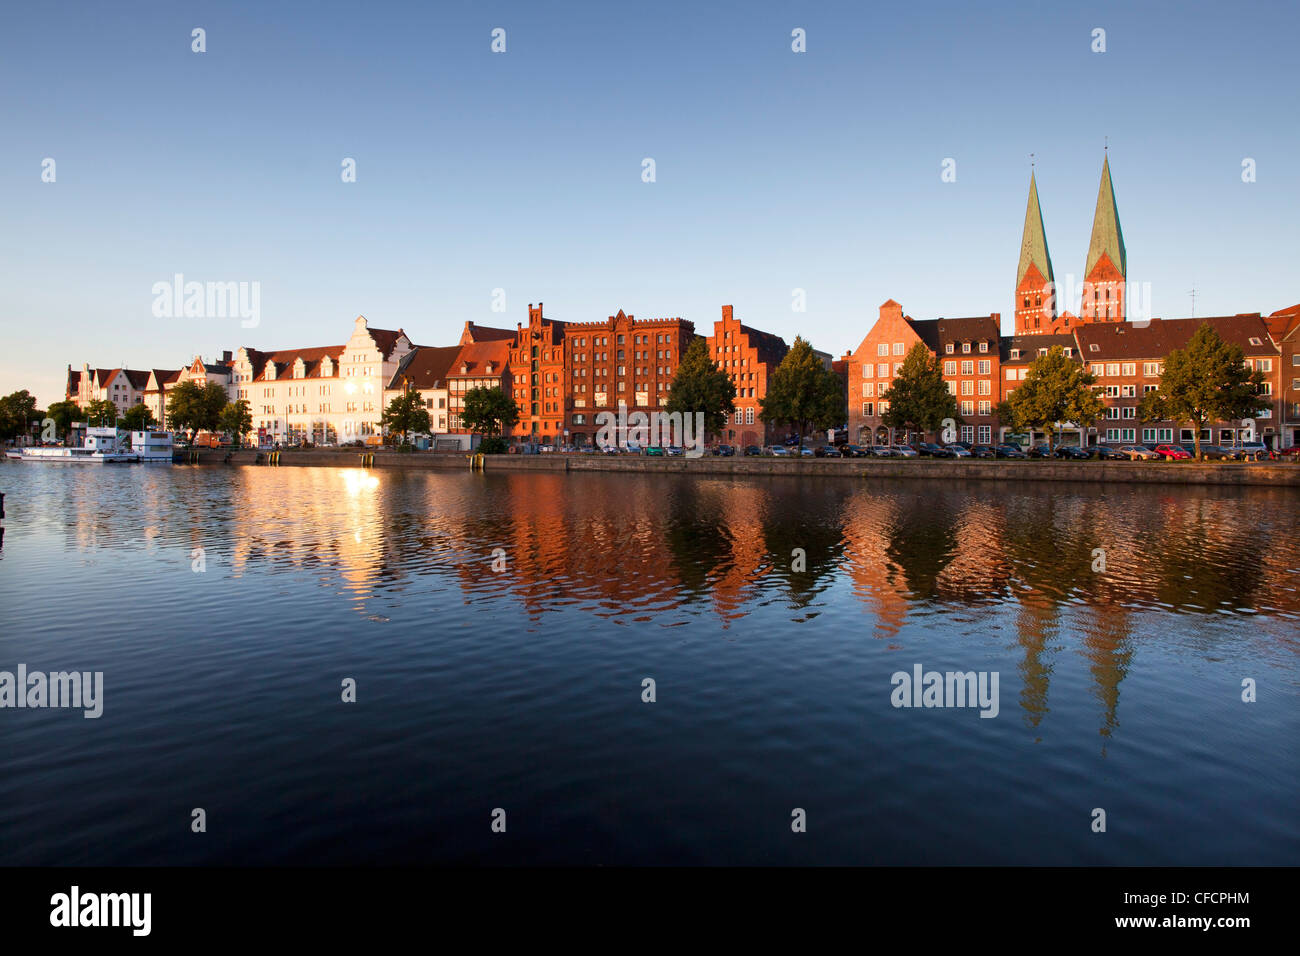 Old storehouses at Holsten harbour, St Mary´s church, Hanseatic city of Luebeck, Baltic Sea, Schleswig-Holstein, - Stock Image